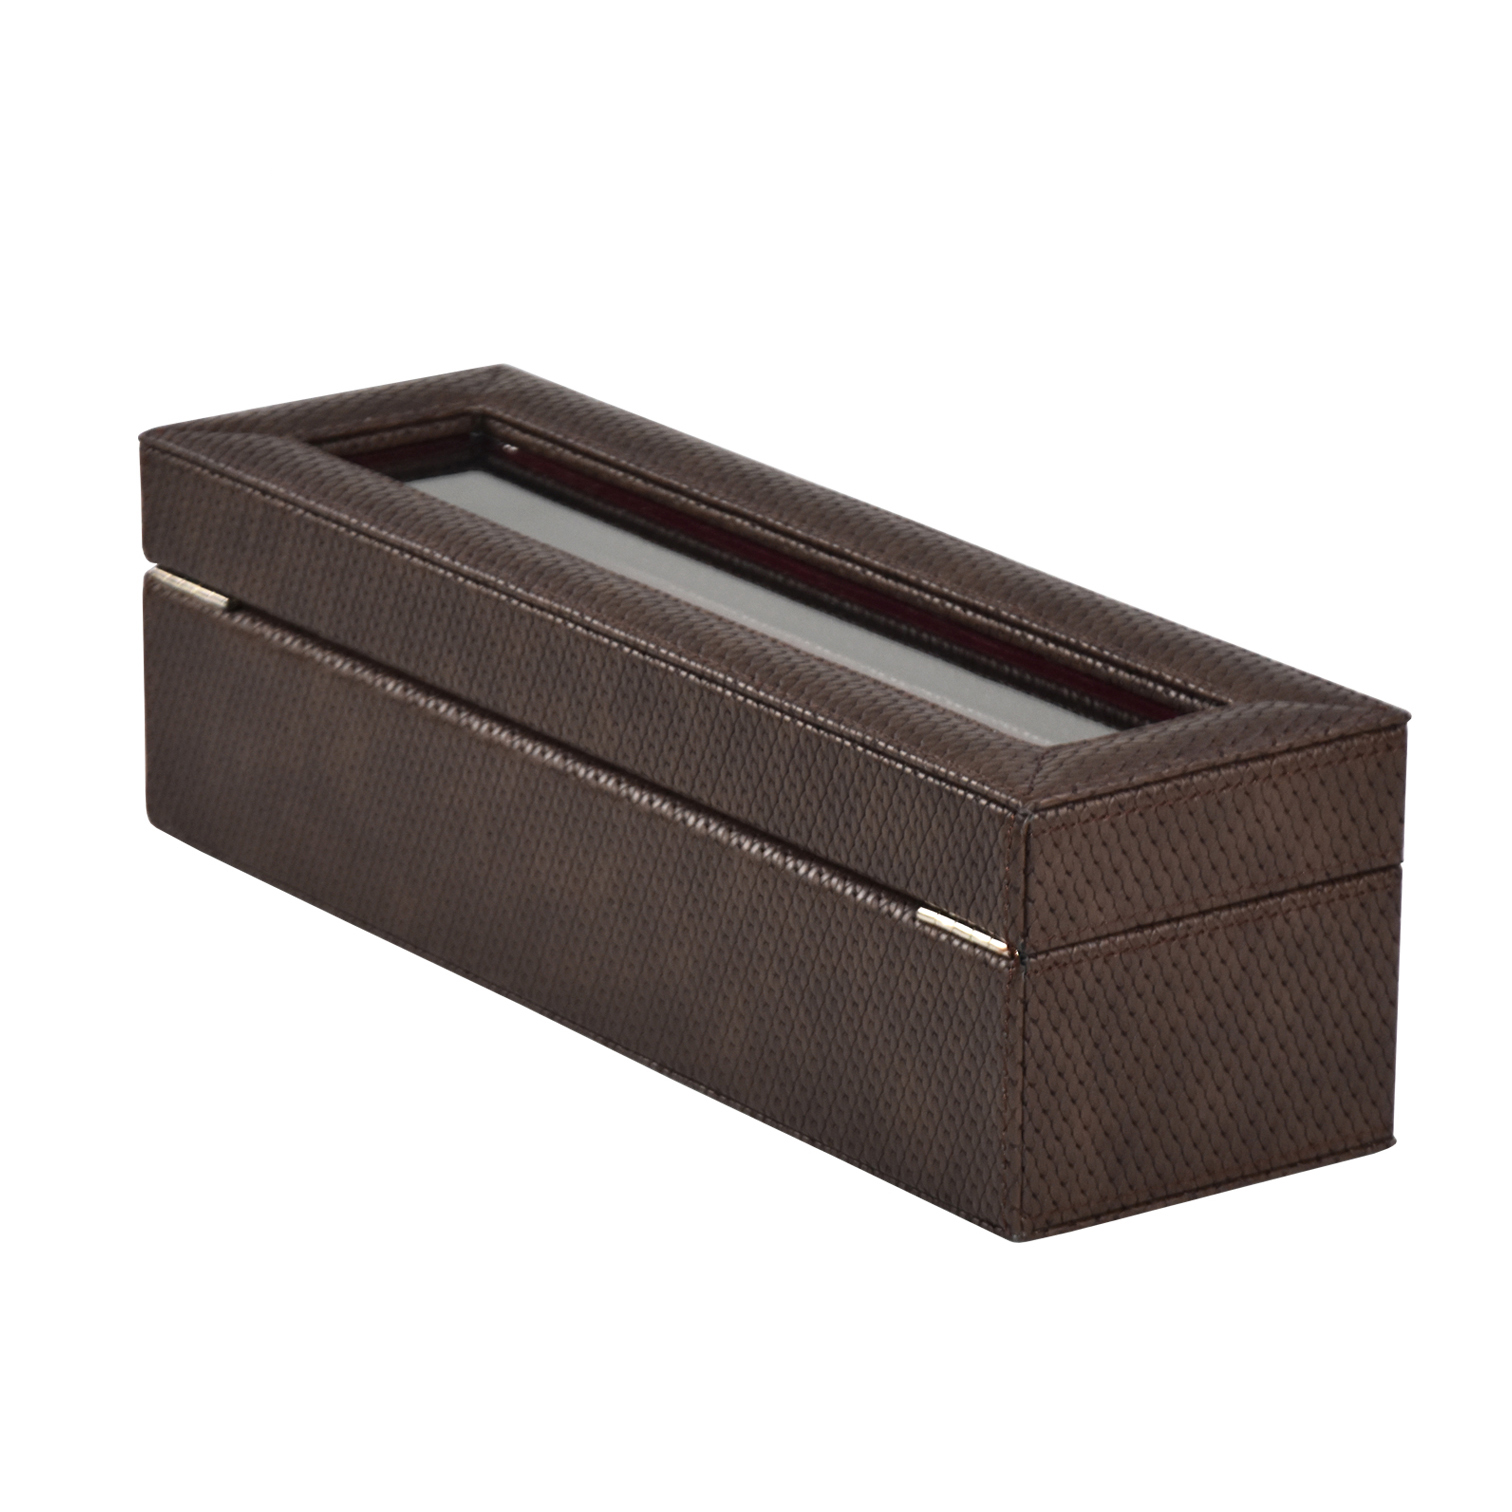 Luxury wooden leather 6-slot watch display box with pillows